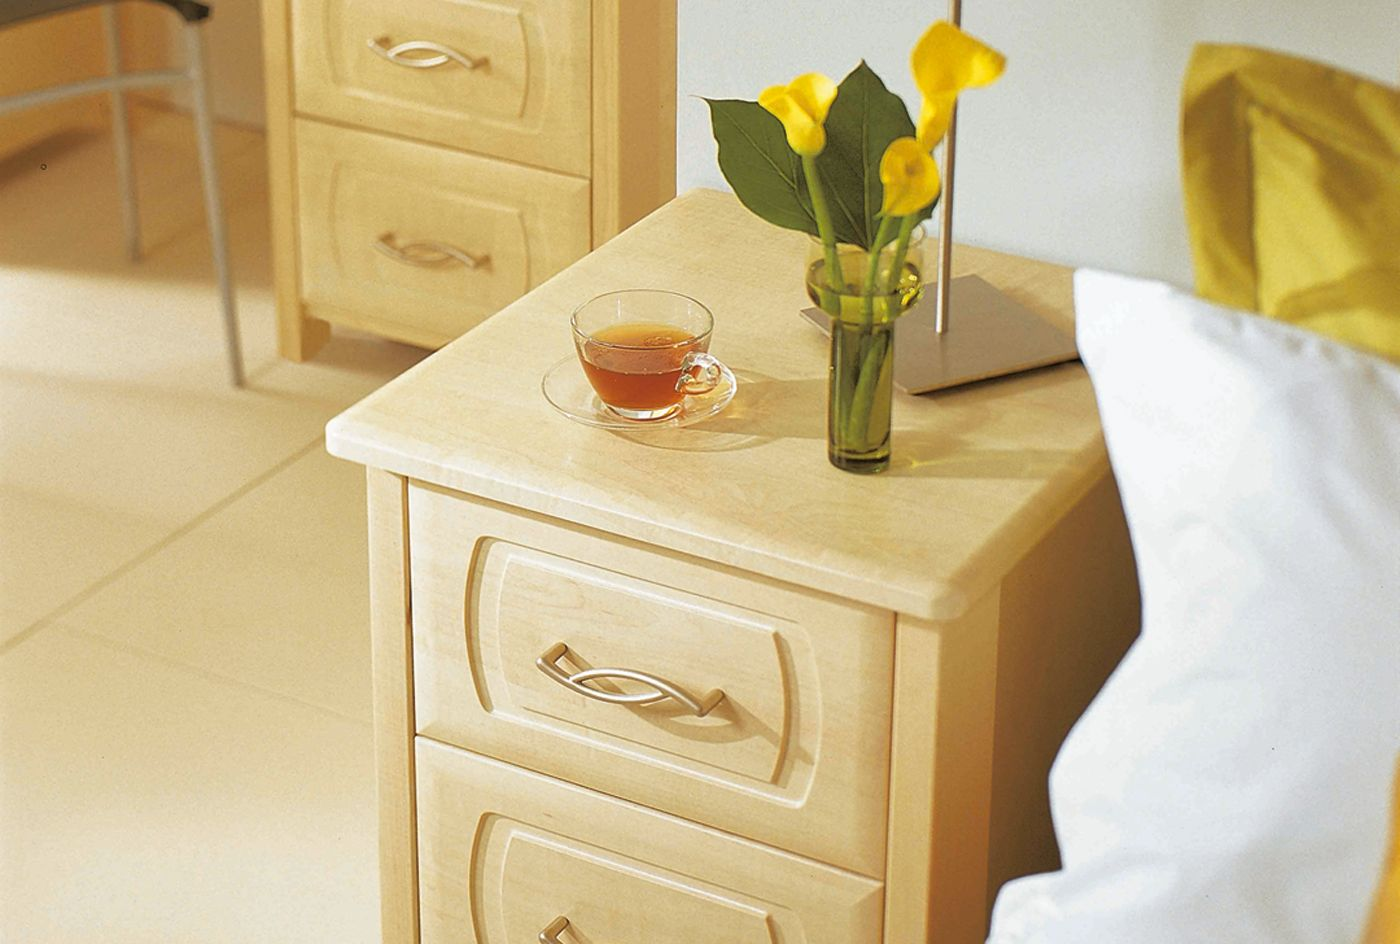 Sharps Fitted Bedroom Furniture Oslo Bedroom Furniture Bedside Cabinets Http Wwwsharpscouk